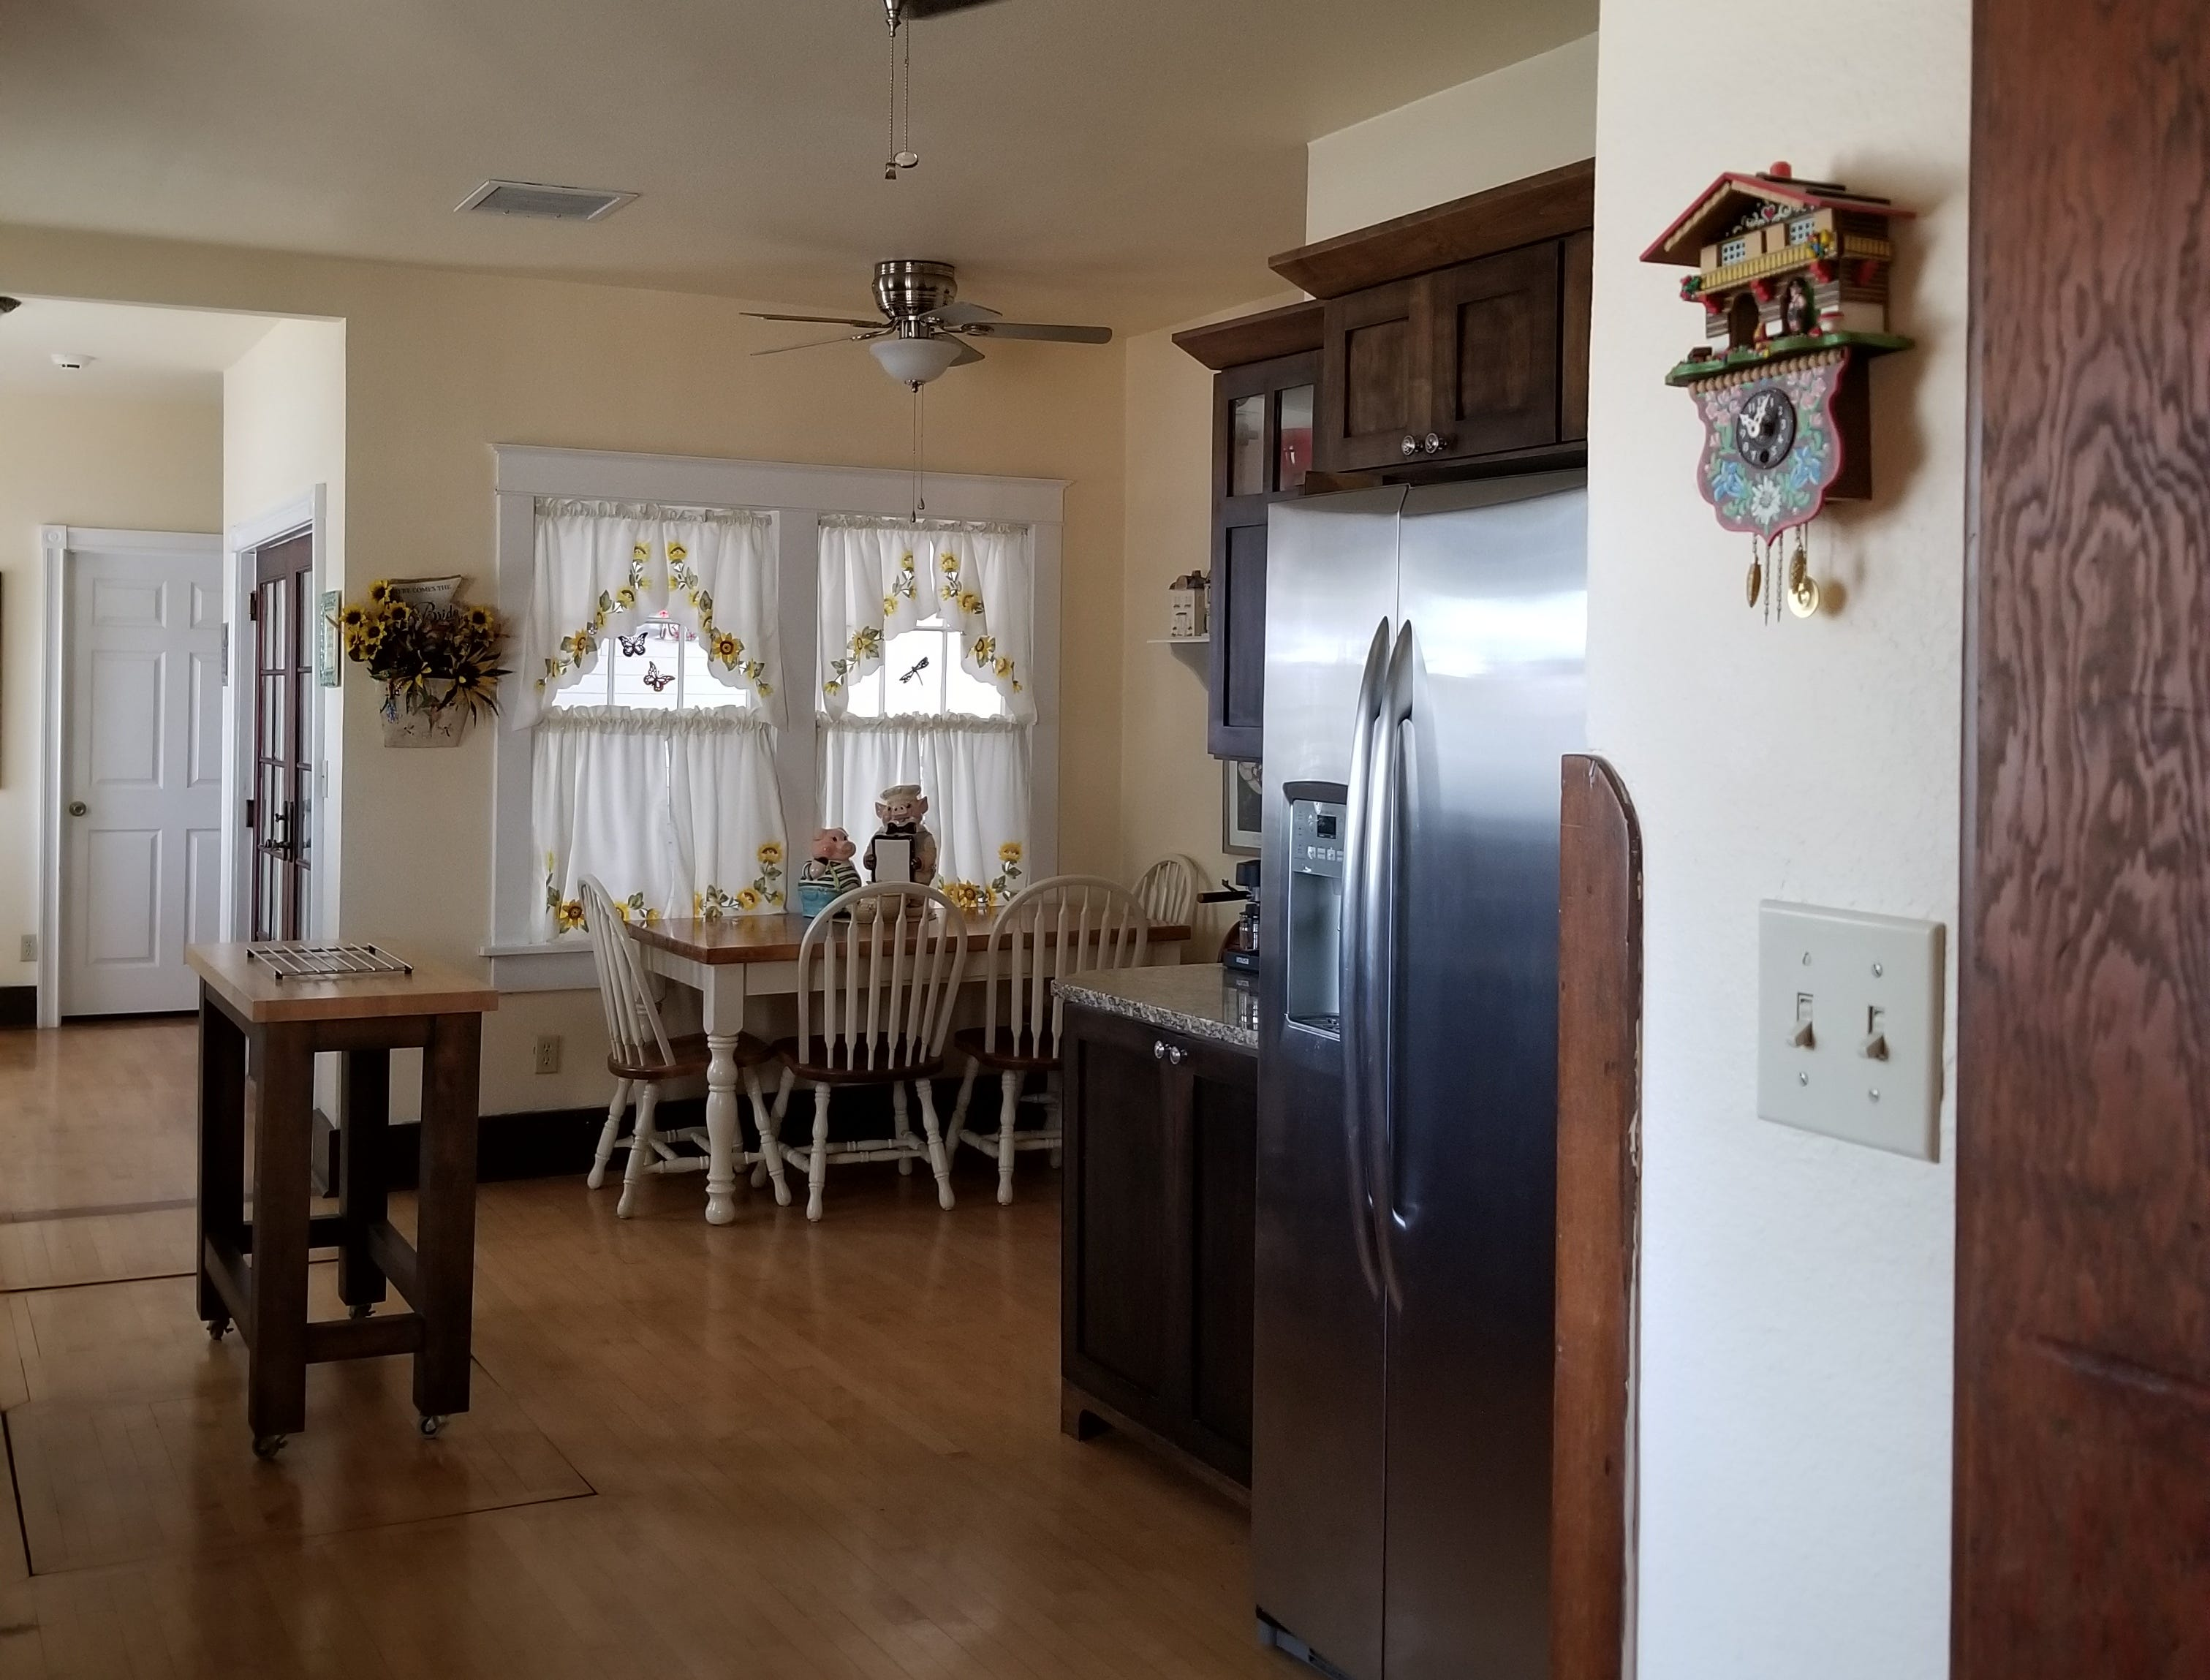 The kitchen was completely remodeled with updated appliances and cabinetry to keep up with Bud's cooking prowess.  Though updated, the room honors the era the home was built with the touch of crisp white curtains handmade by Bud's mother.